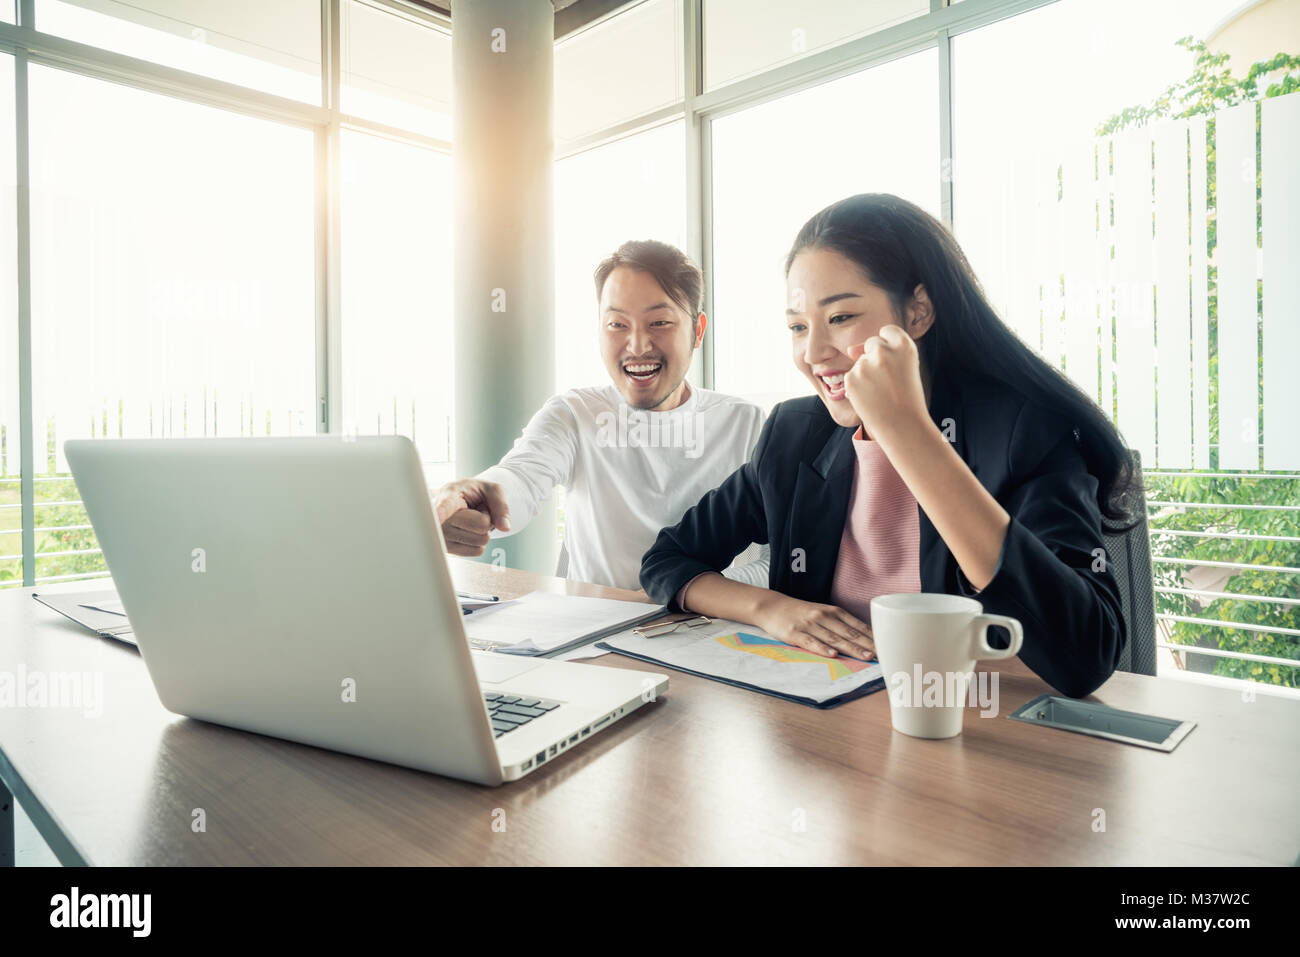 Asian couple business people with casual suit working with happy action in office Business people concept. - Stock Image